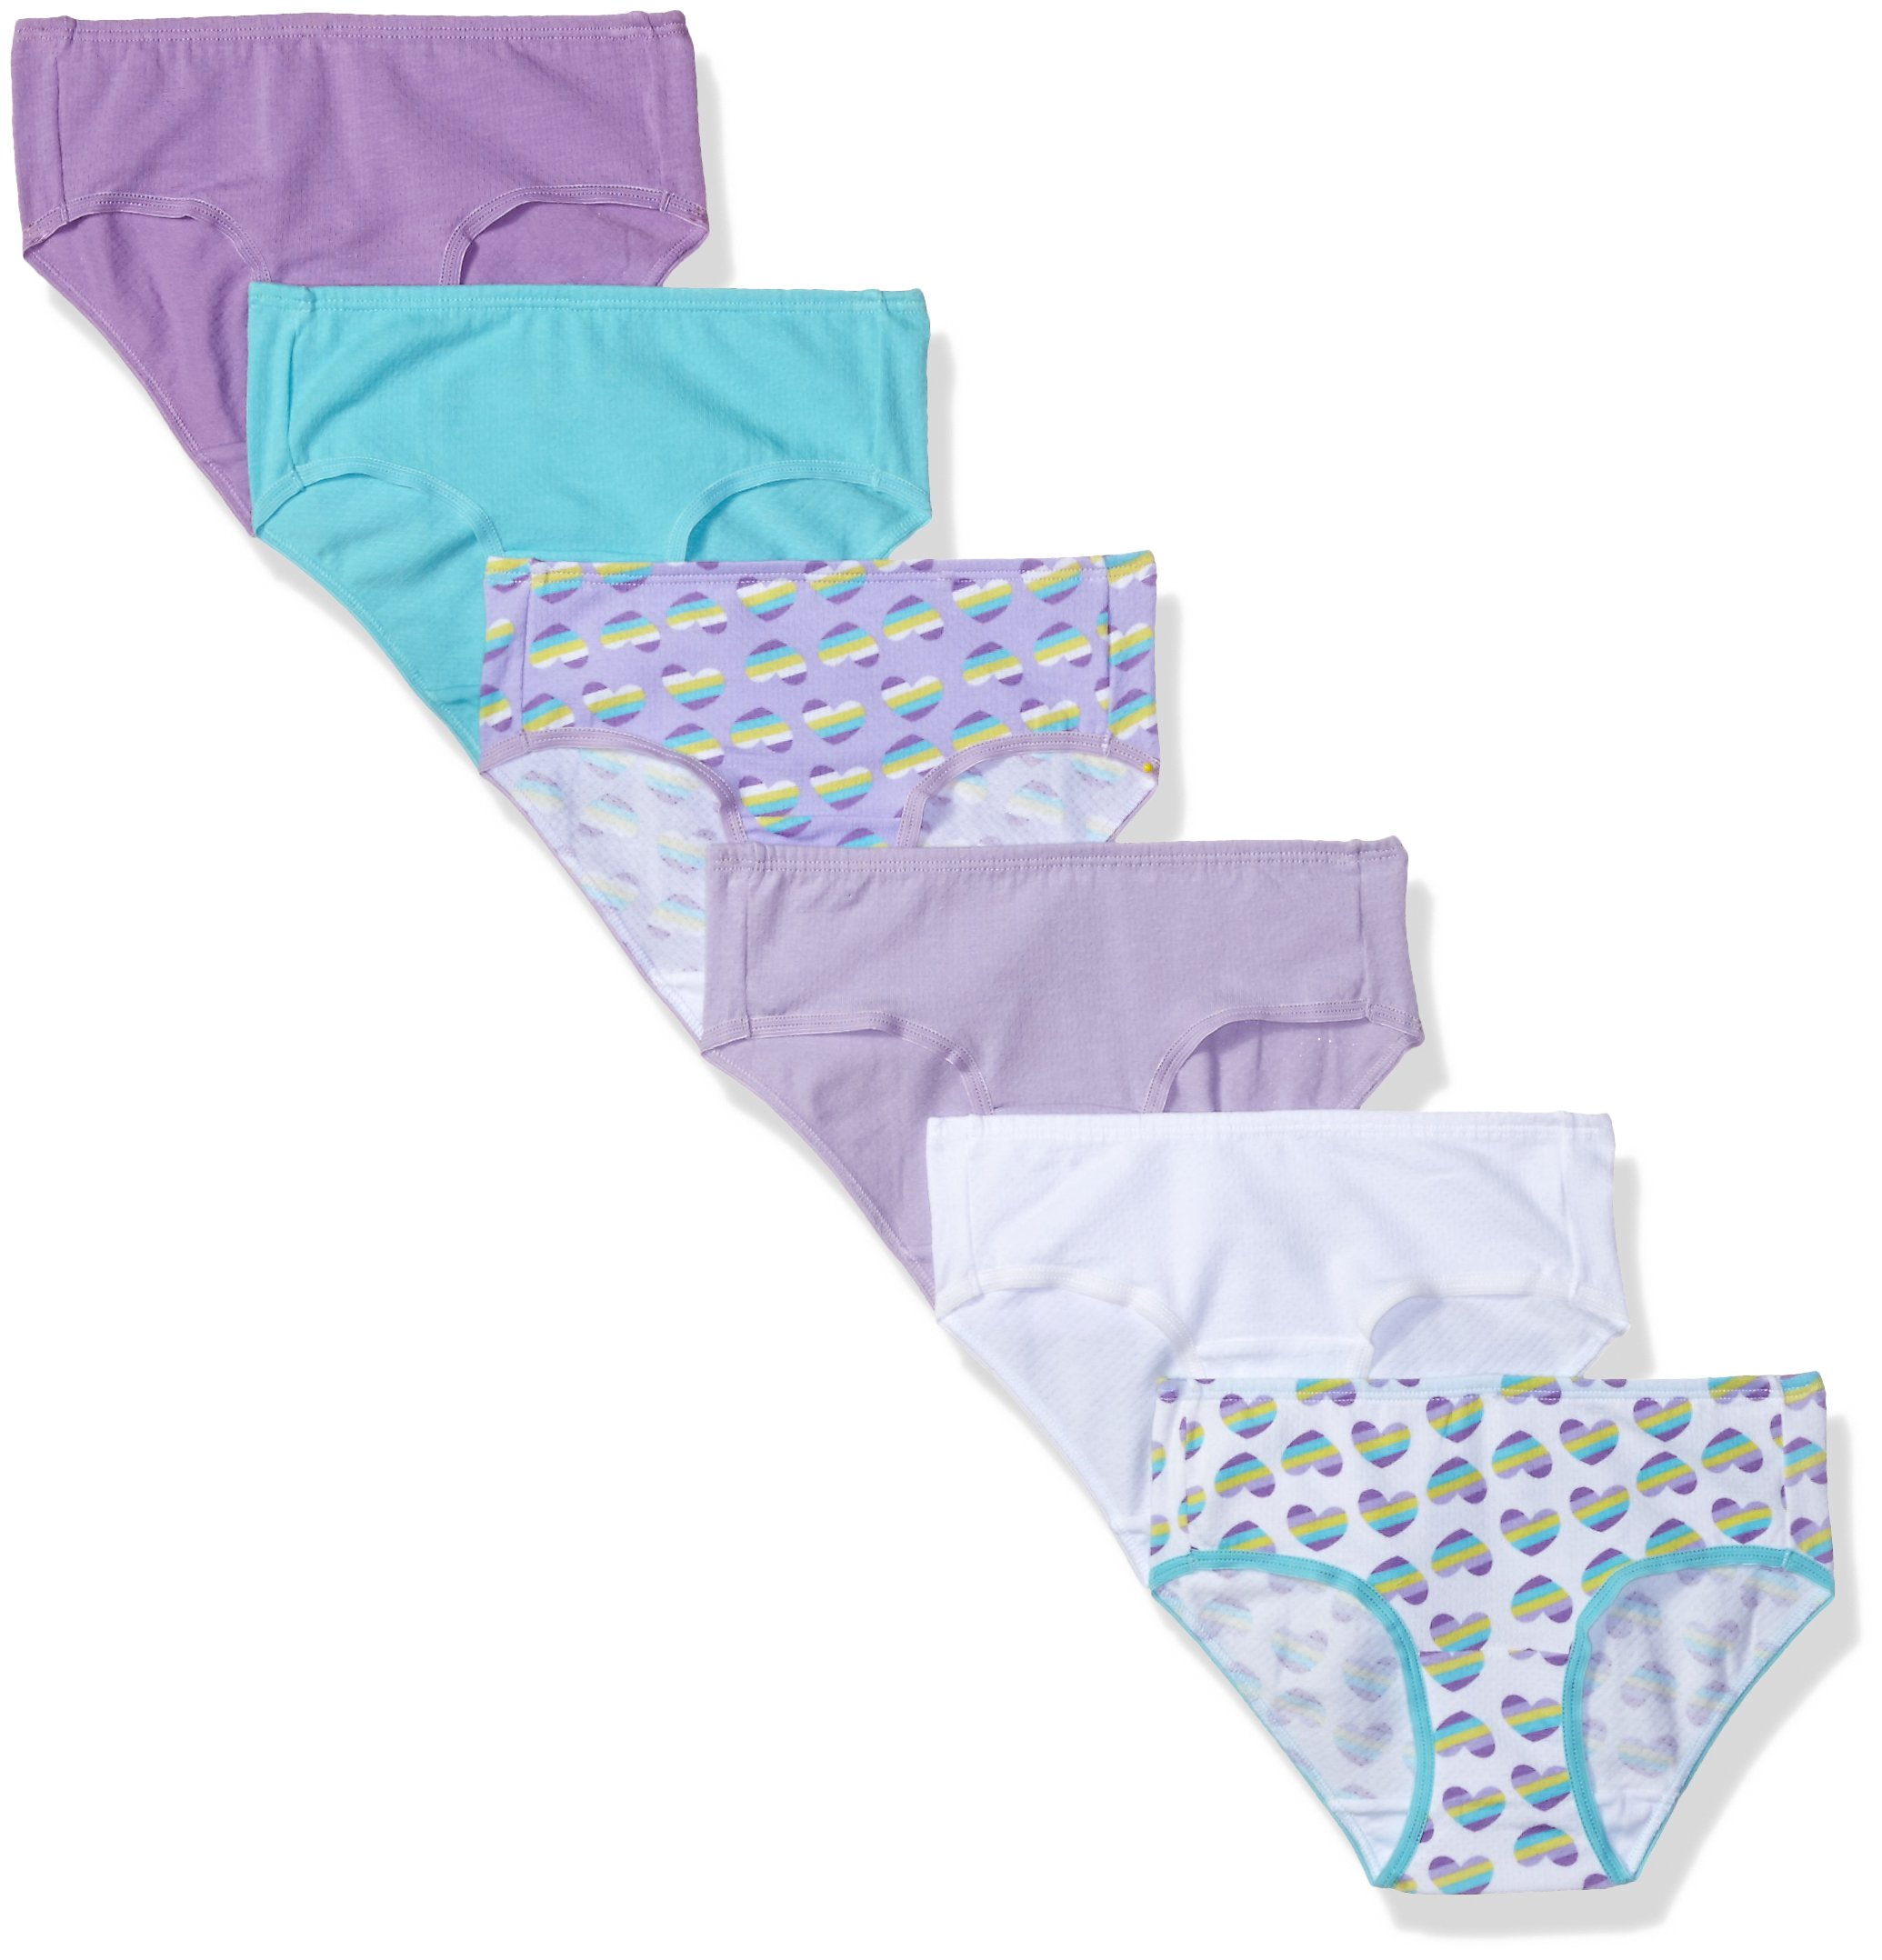 Fruit of the Loom Girls' Breathable Underwear,Assorted, Multipack